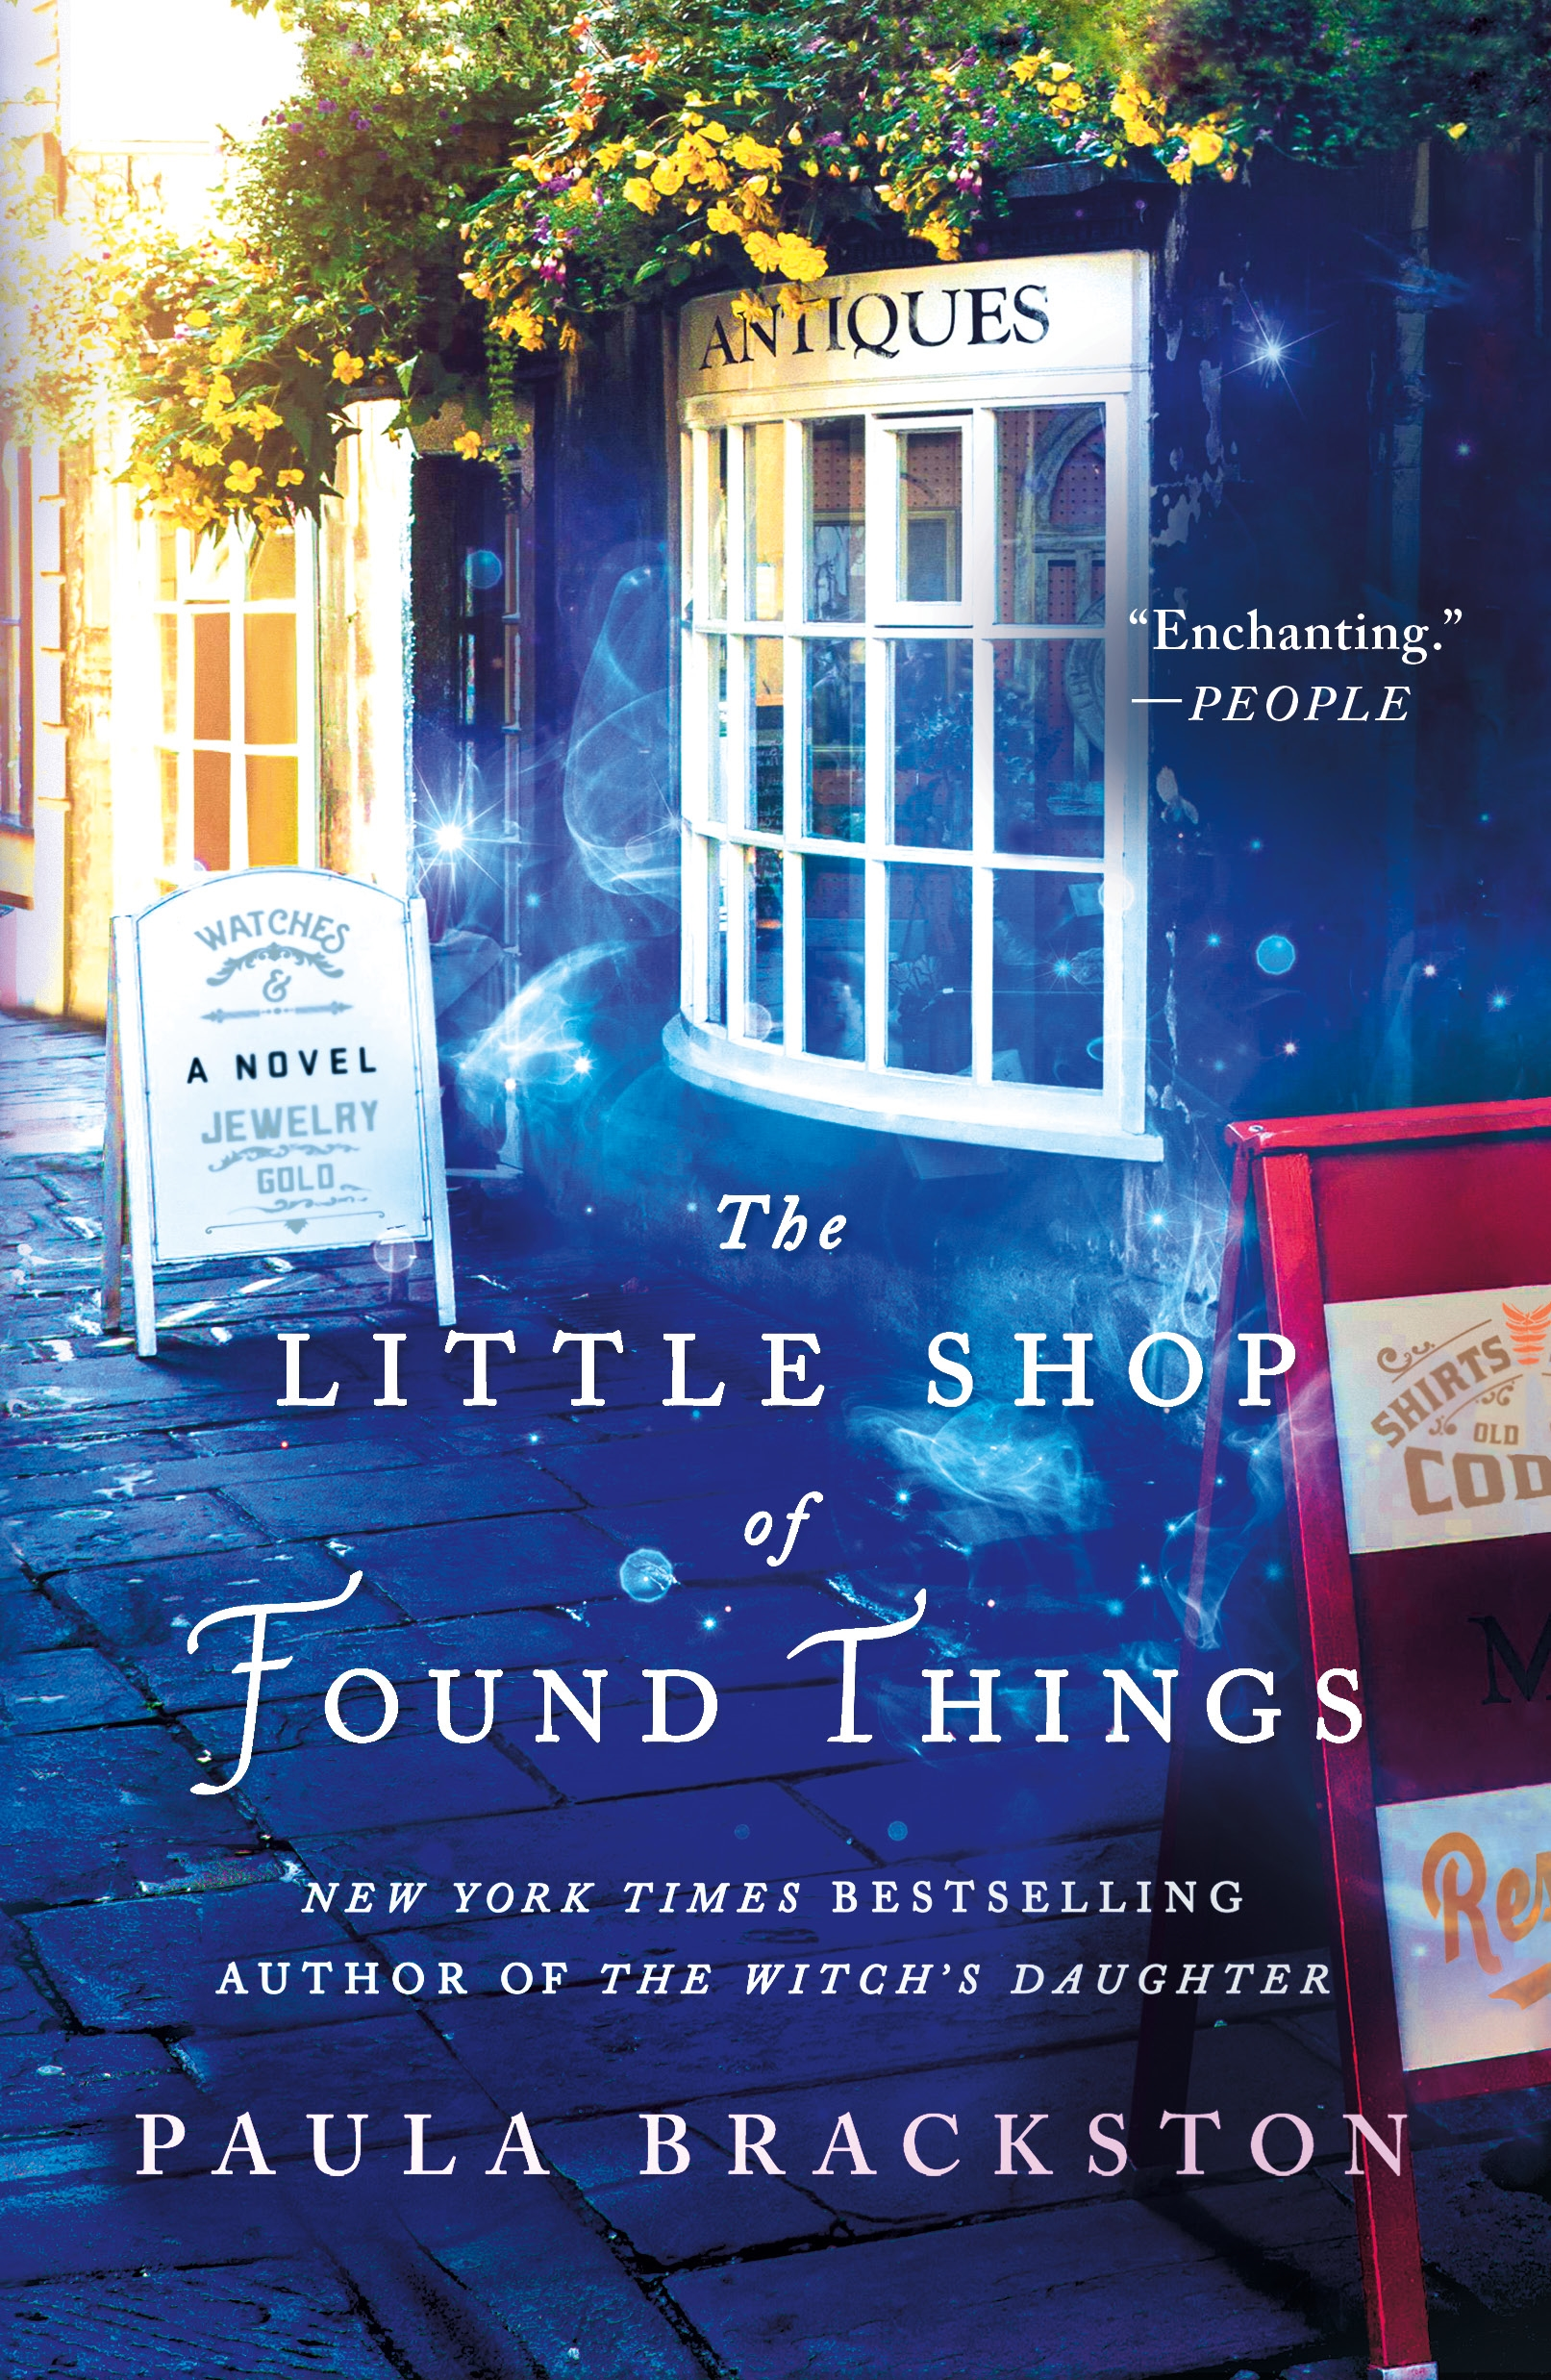 The little shop of found things cover image